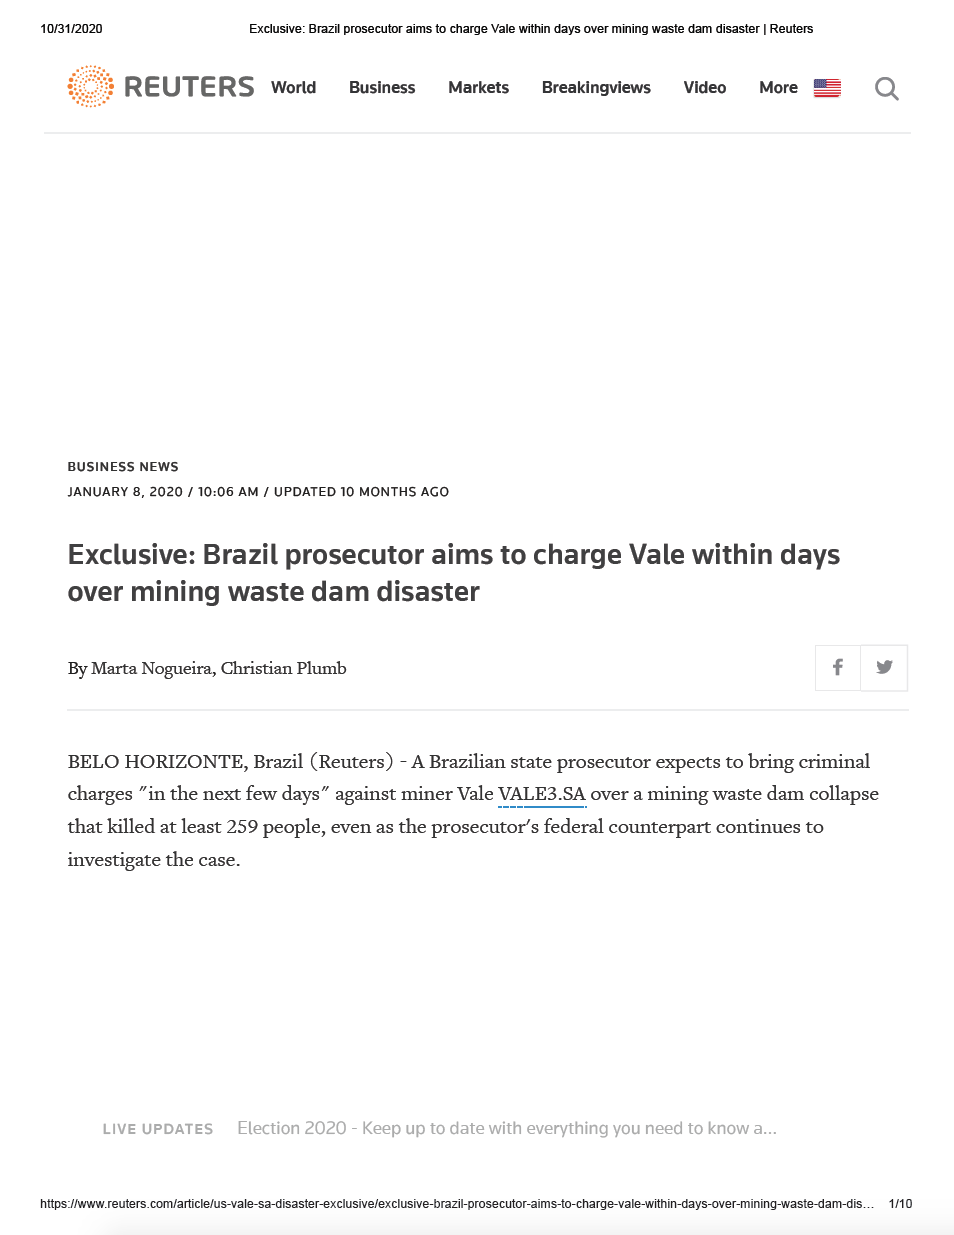 Thumbnail image of document cover: Exclusive: Brazil Prosecutor Aims to Charge Vale Within Days Over Mining Waste Dam Disaster